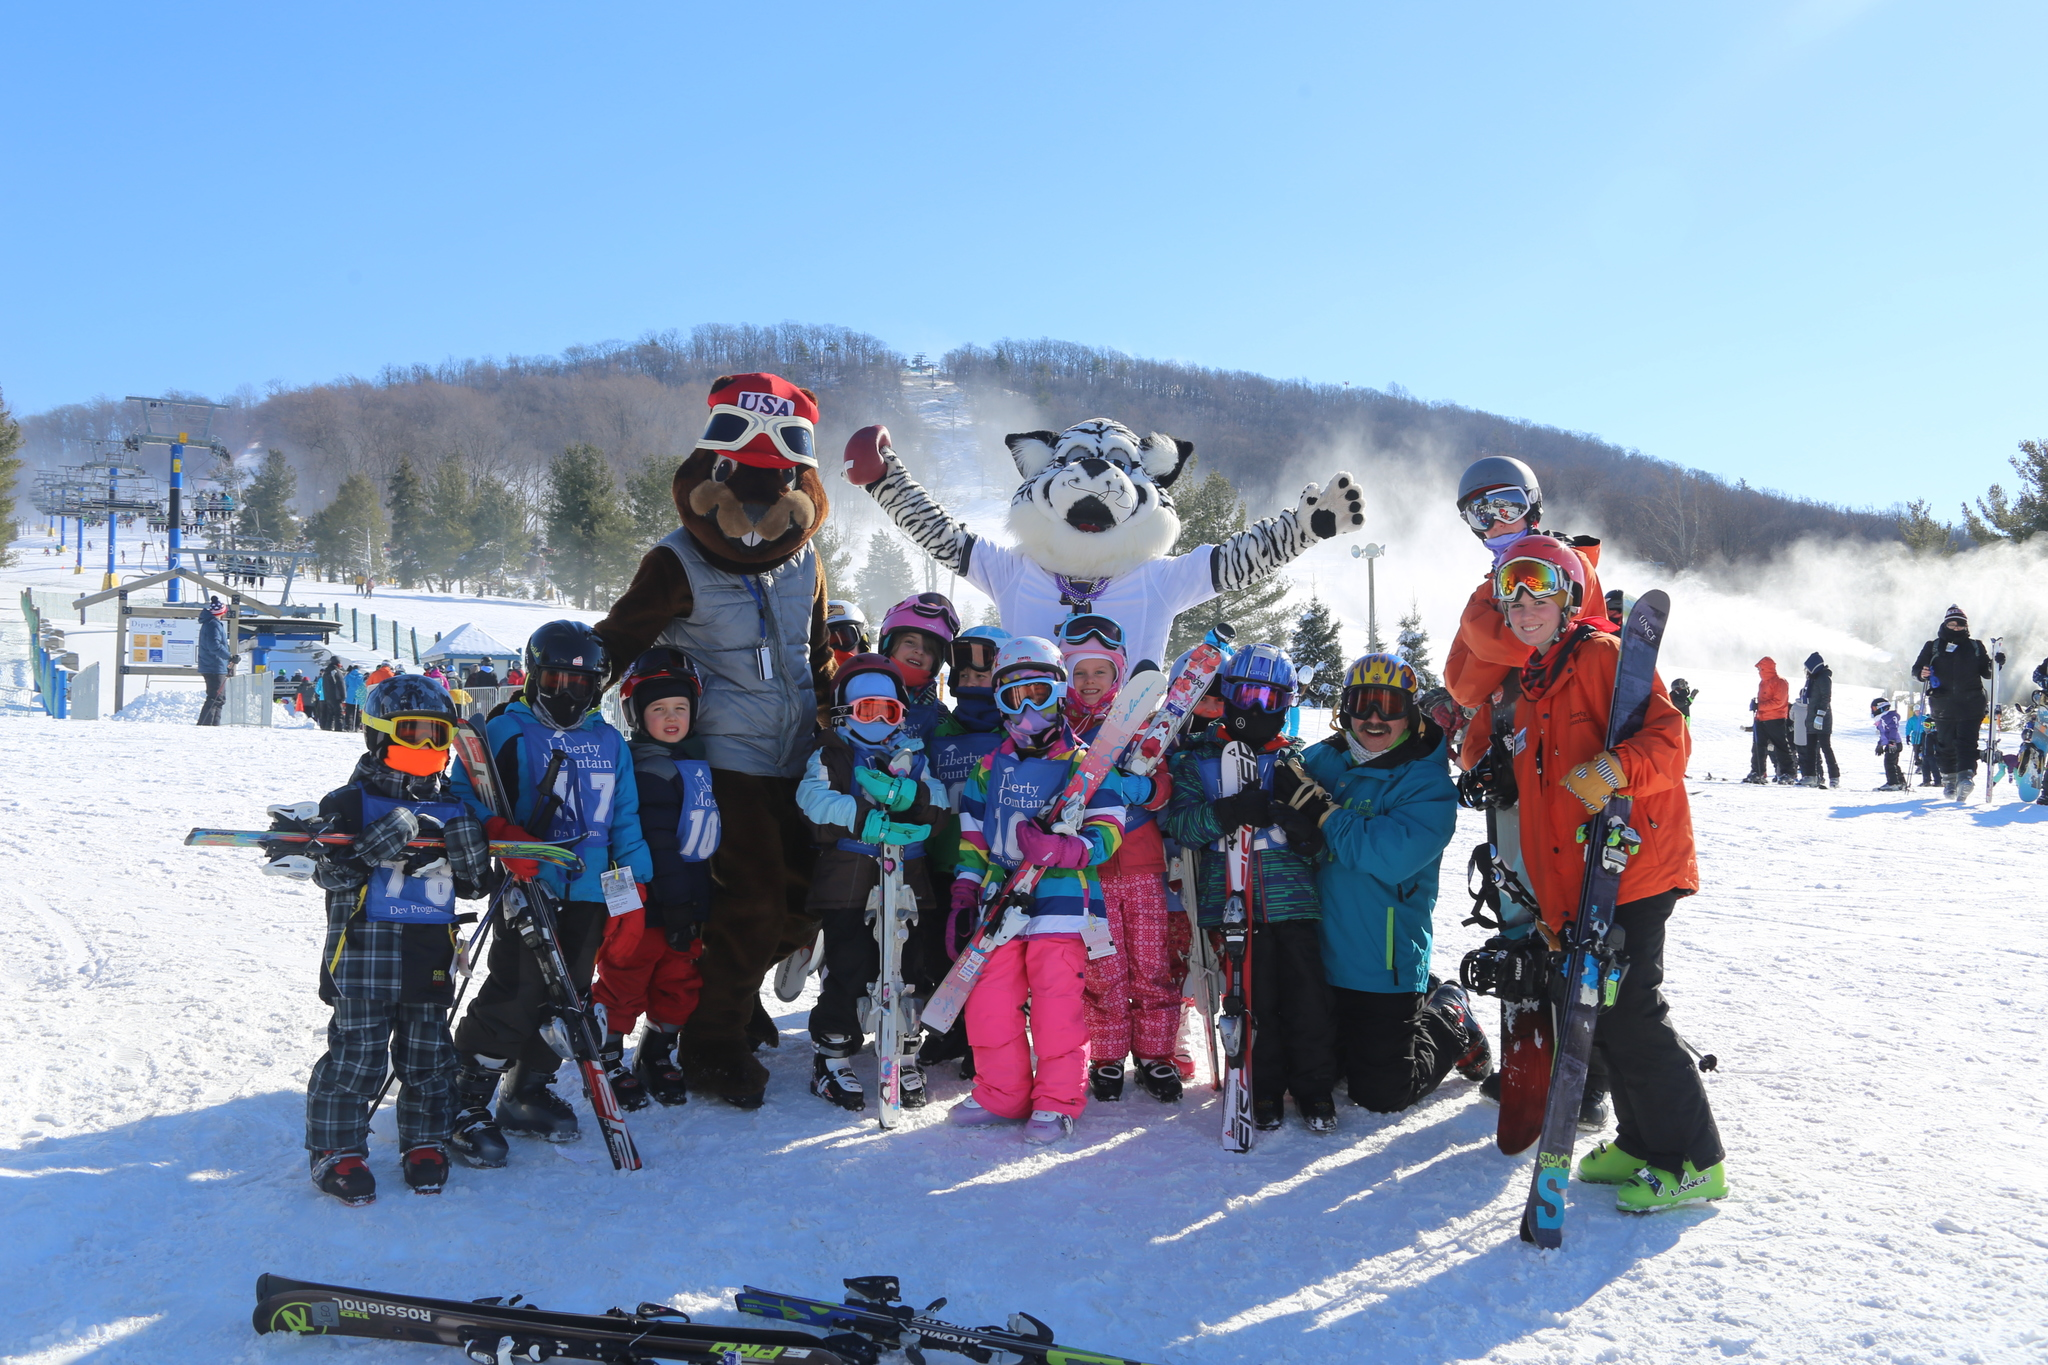 What should you know for a fun-filled first day out on the slopes?